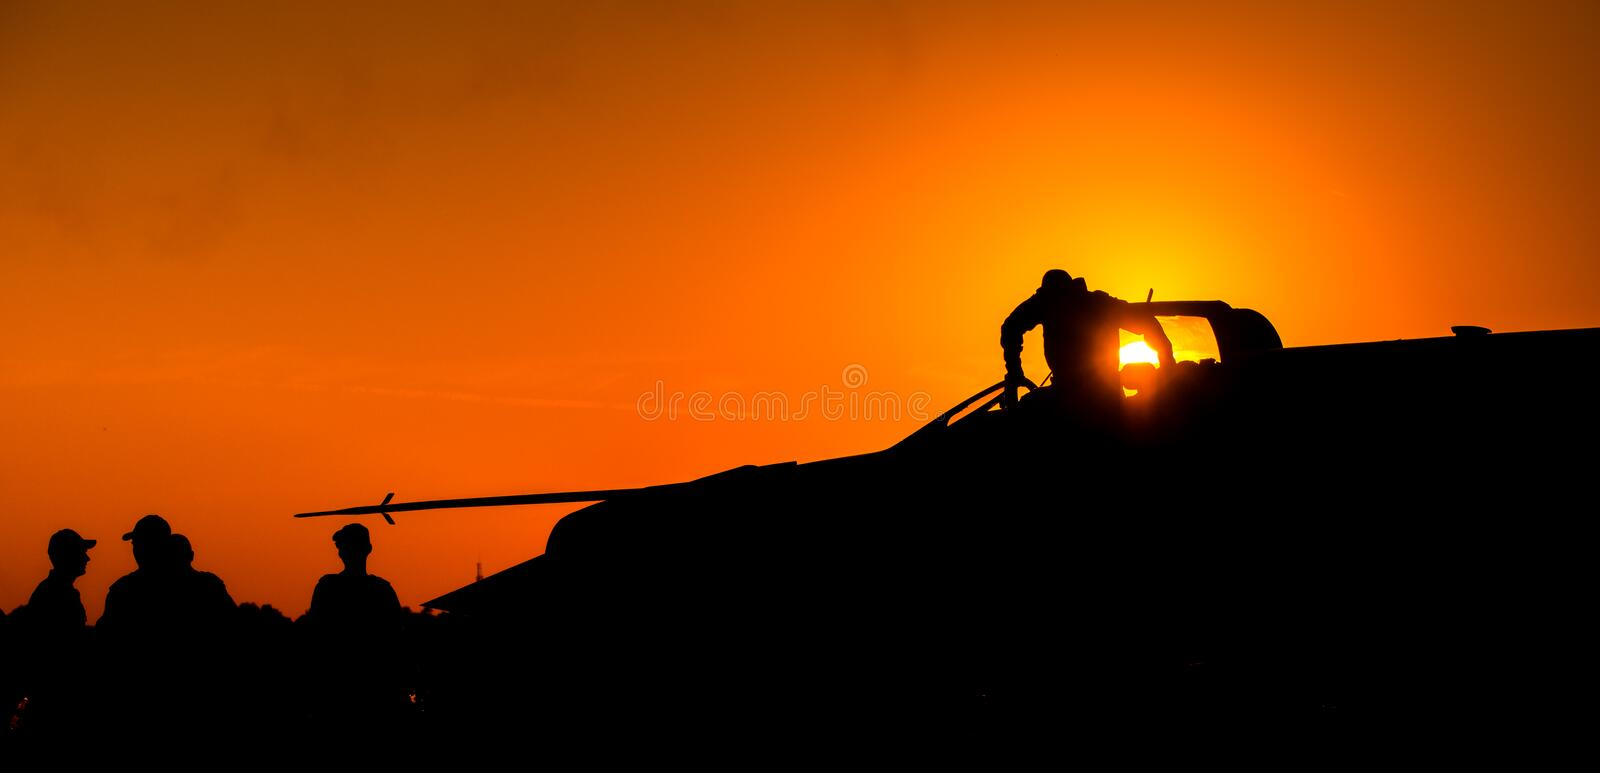 MiG-21 Lancer air fore pilot silhouette on sunset Top Gun fighter pilot royalty free stock image